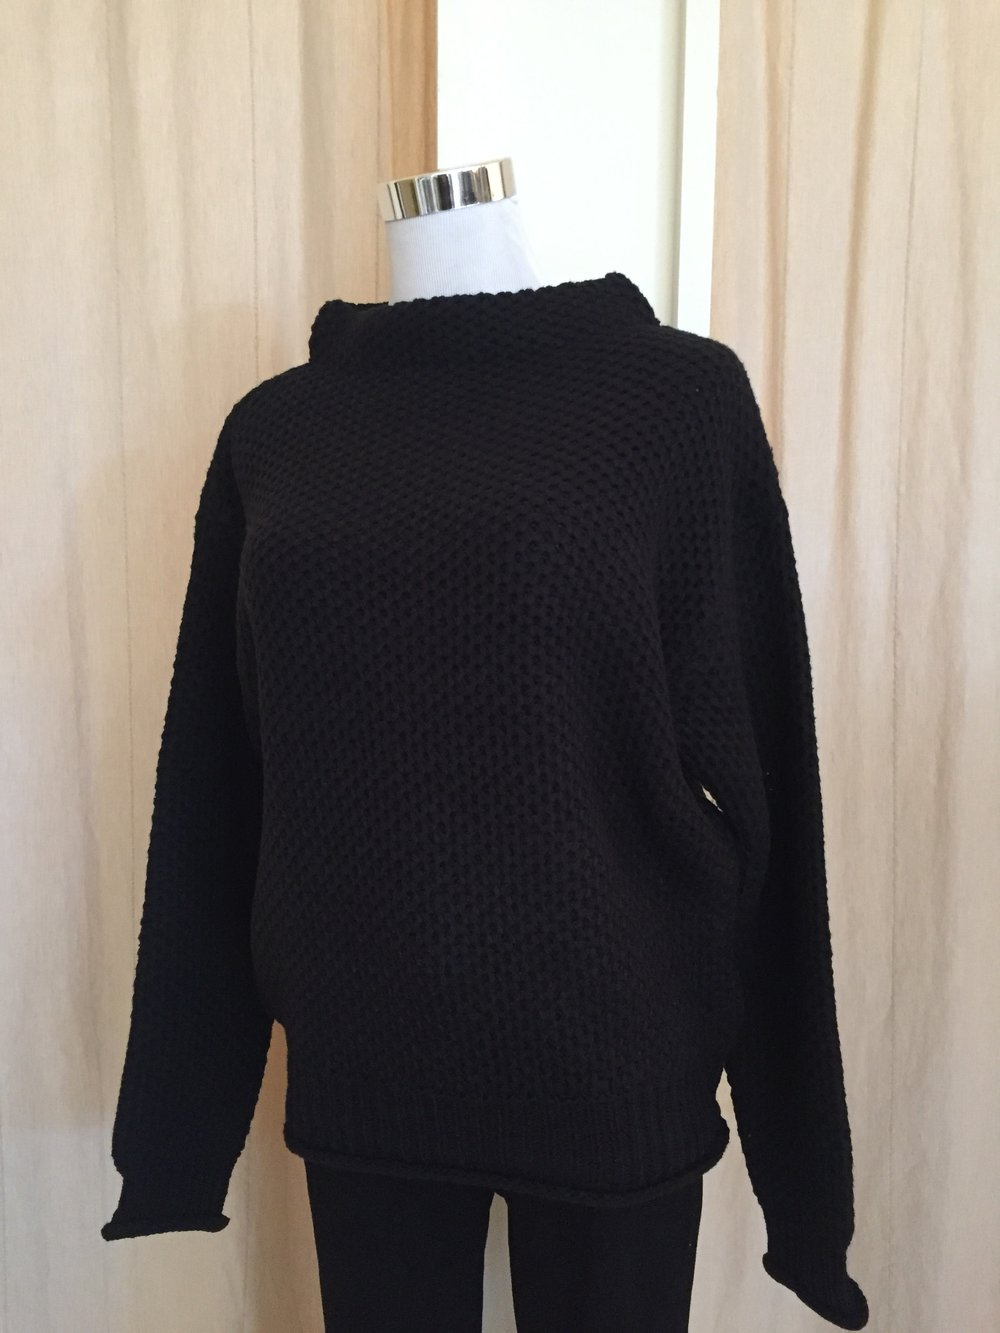 Black Boxy Sweater ($42)